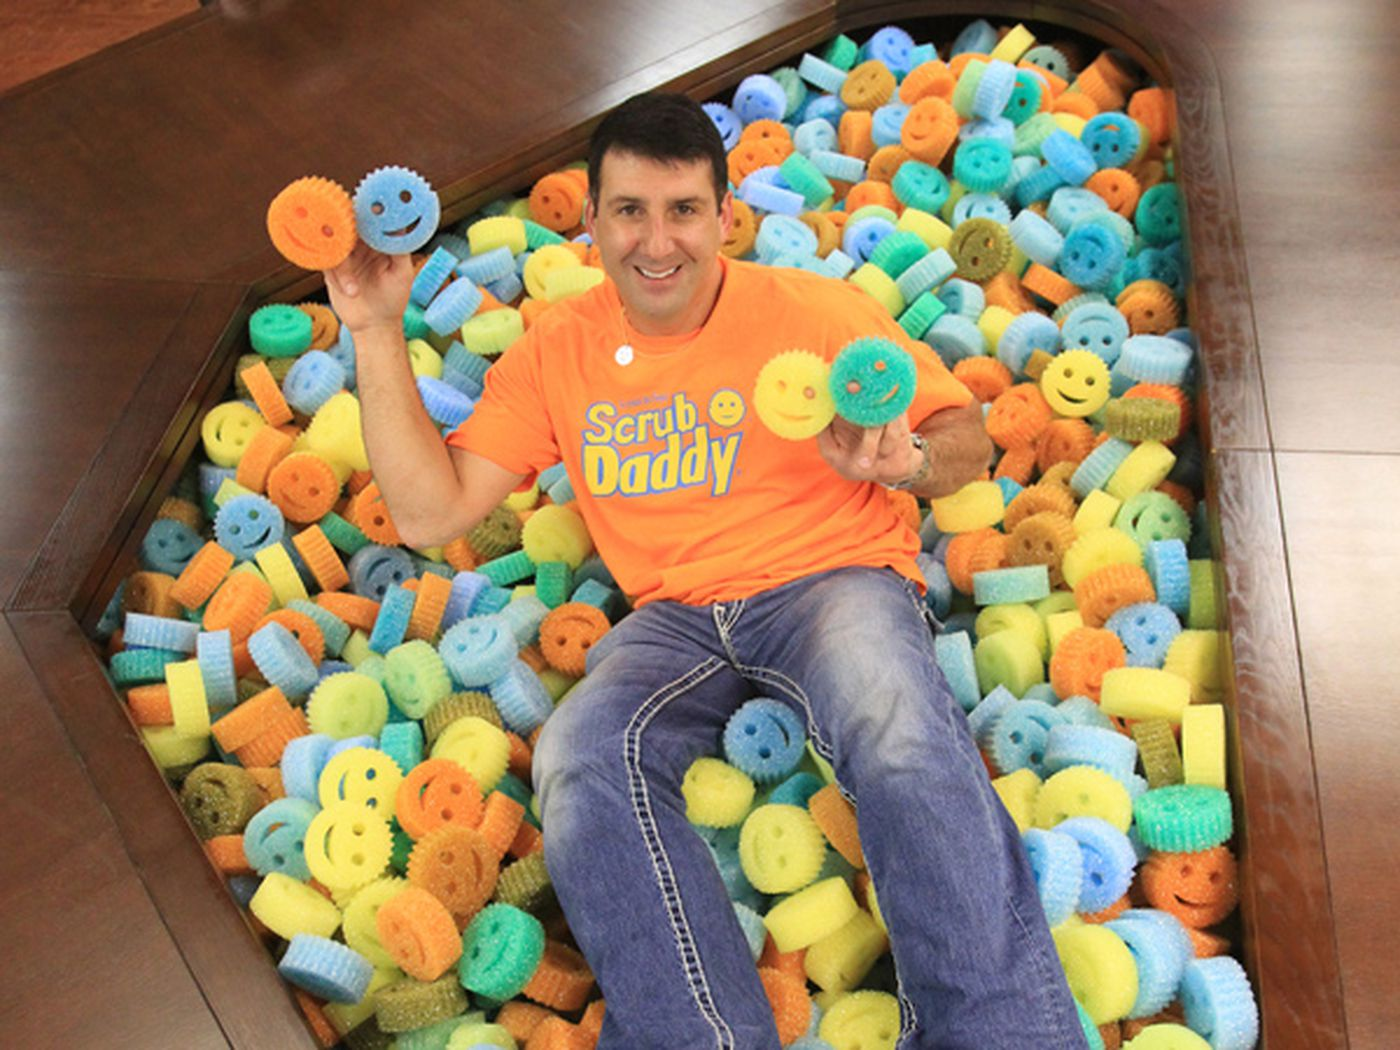 """Scrub Daddy creator President and CEO Aaron Krause was on the road to megamillions since landing one of the sharks of ABC's """"Shark Tank"""" as a partner. Krause moved manufacturing back to Delaware County from Germany. (CHARLES FOX/Staff Photographer)"""